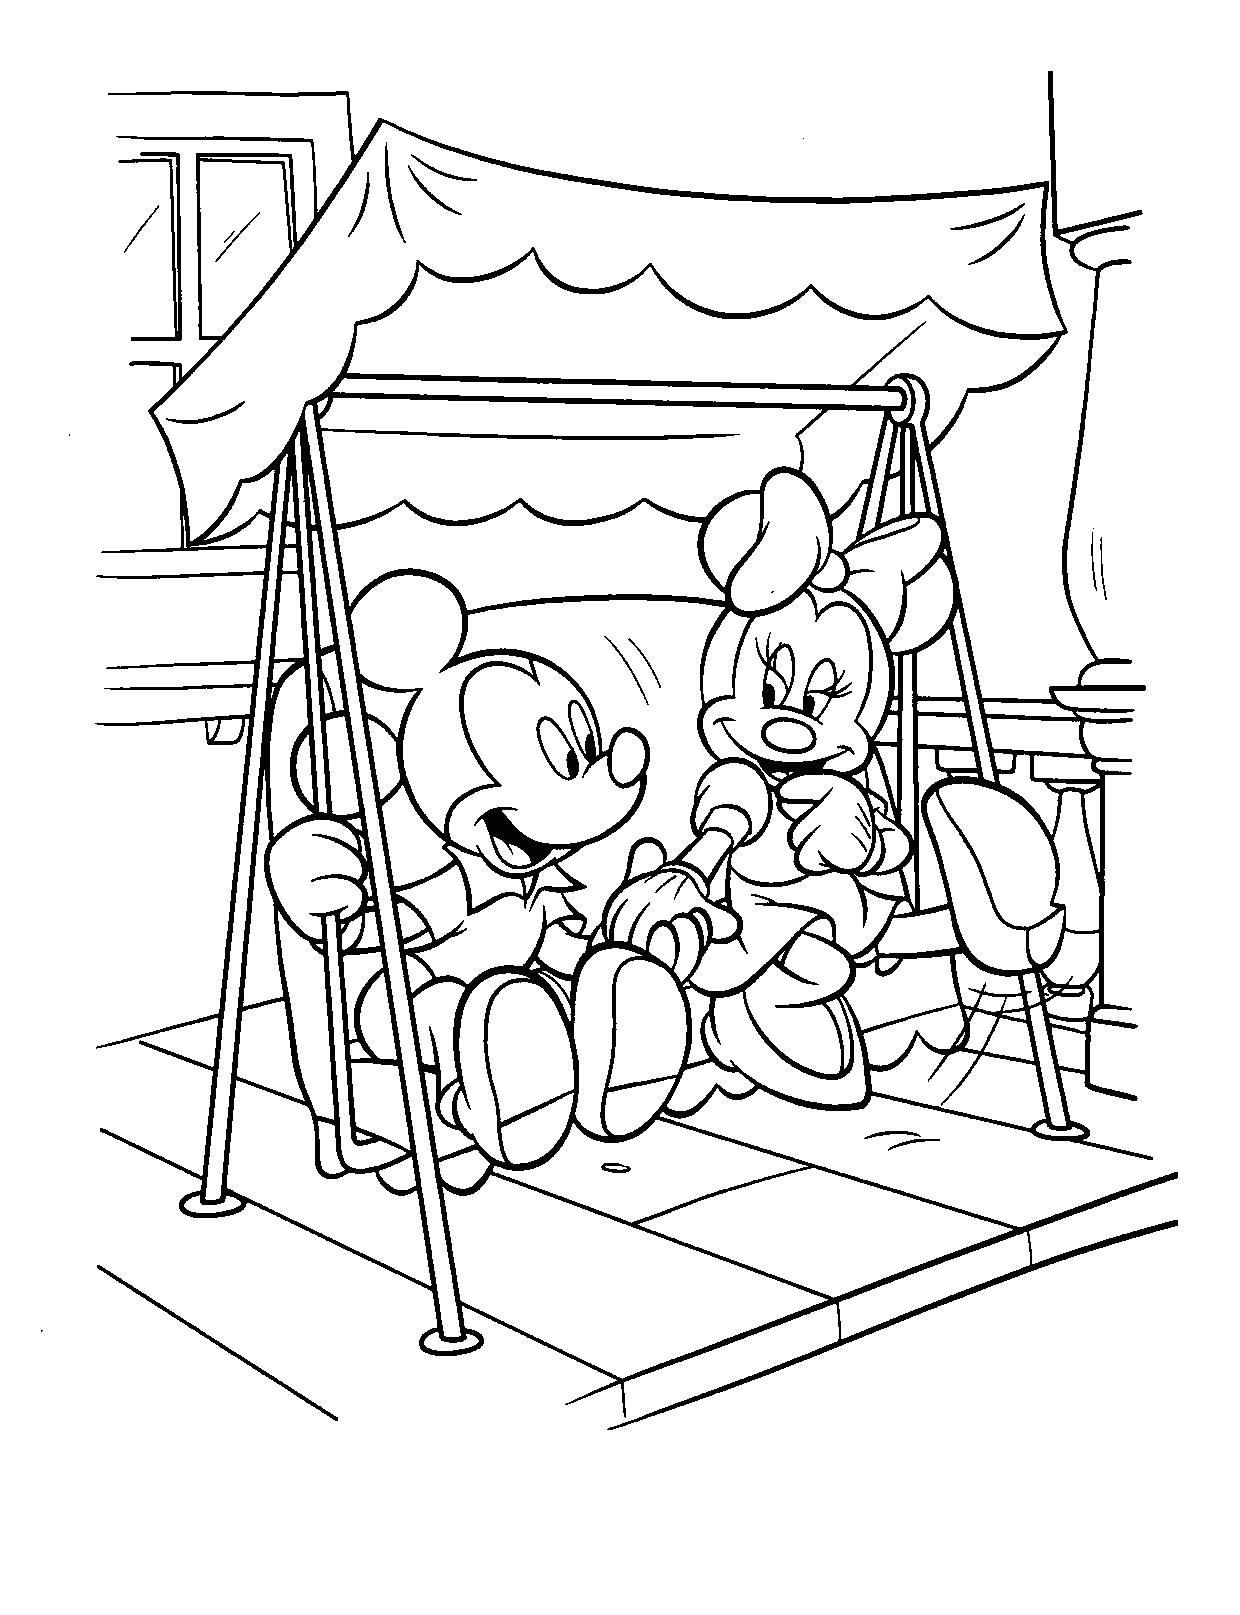 Coloring Page of Mickey and Minnie Mouse